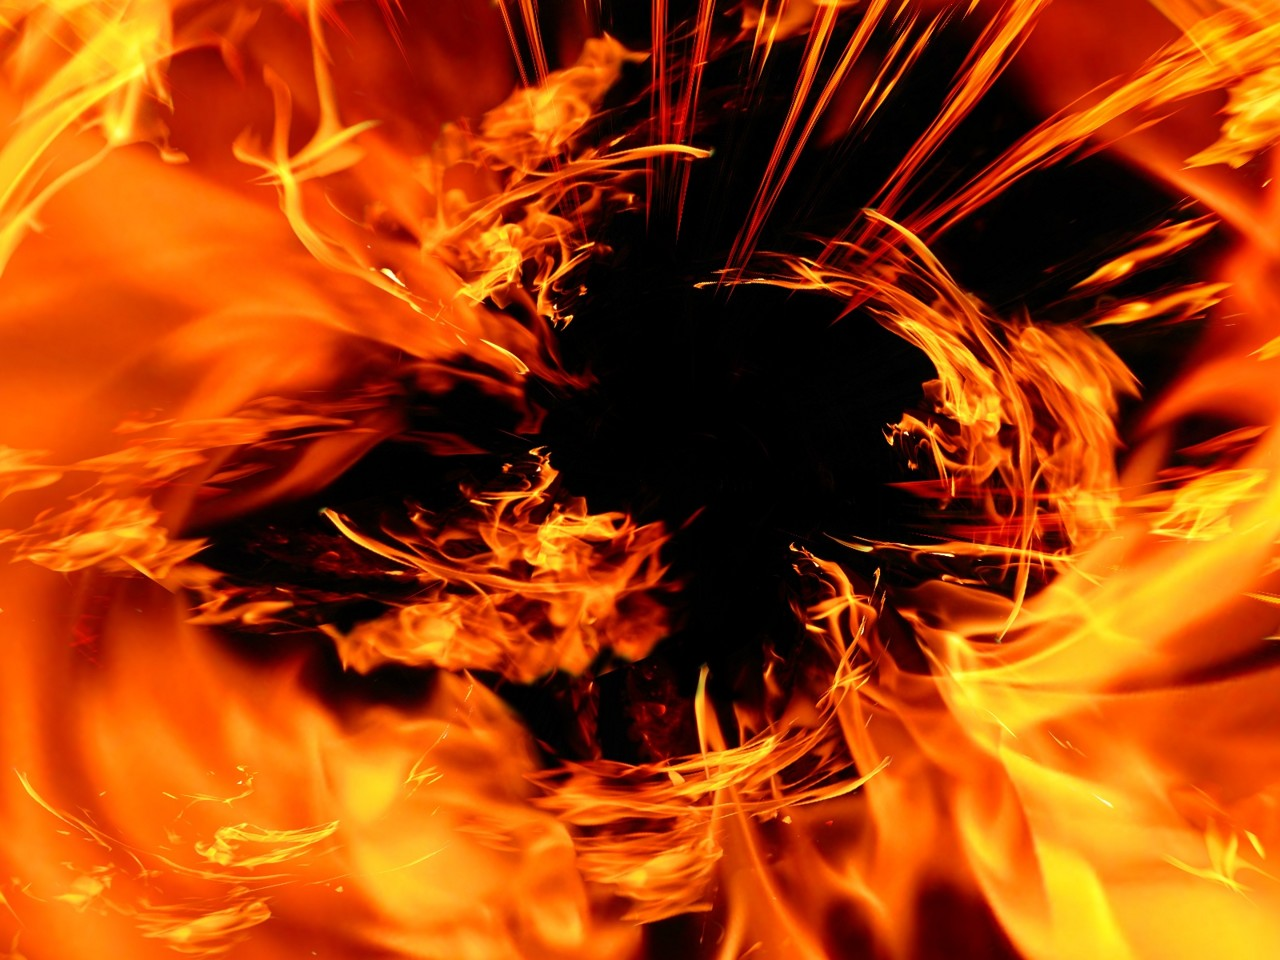 HD fire wallpapers wallpaper for backgrounds wallpapers 1280x960